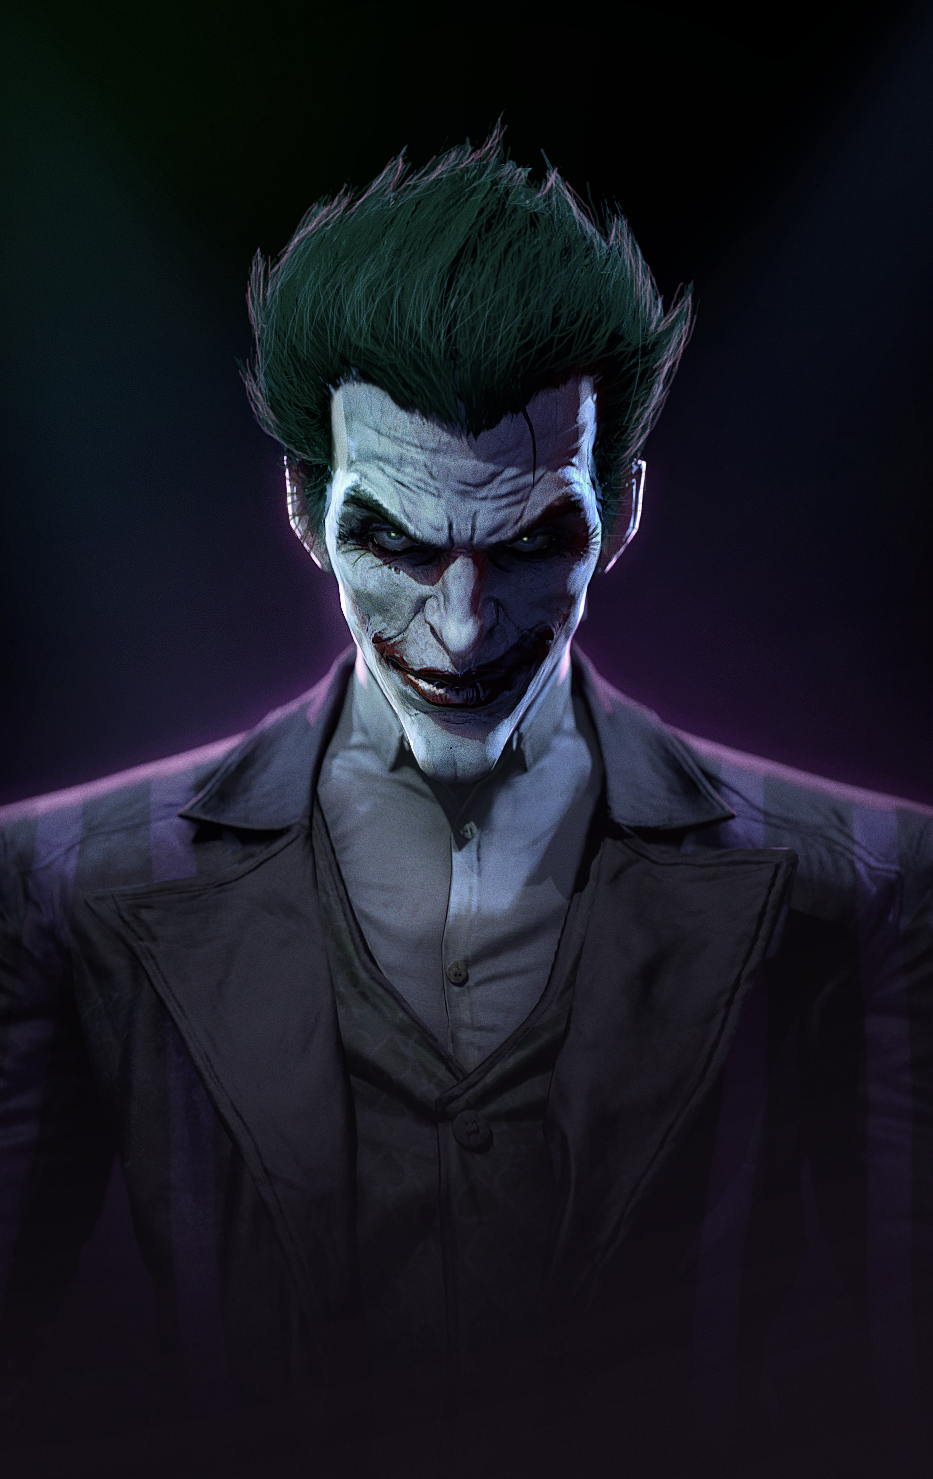 Joker Bedroom Wallpaper